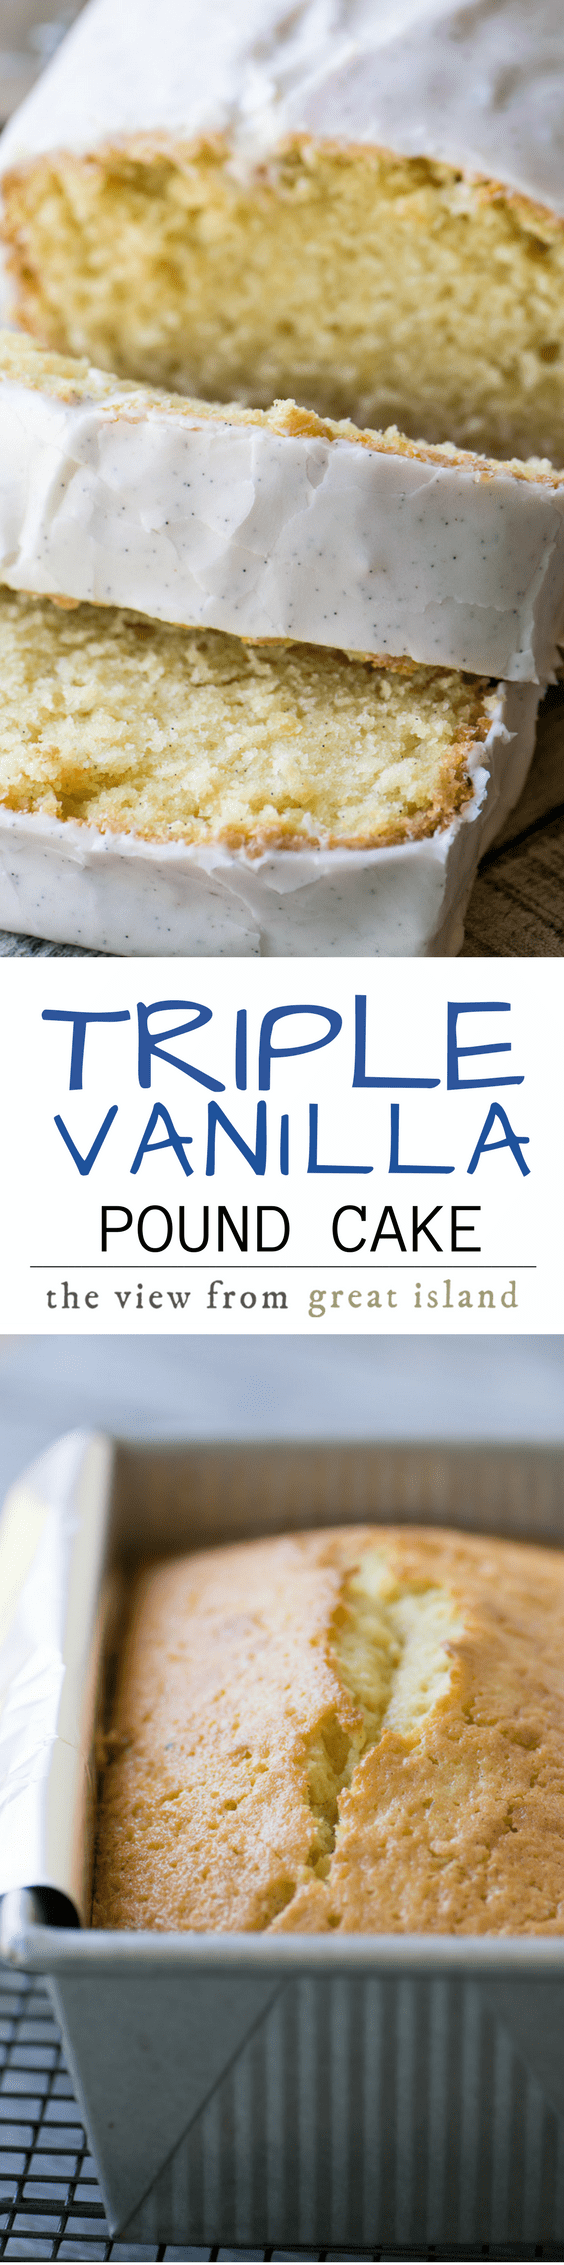 Triple Vanilla Pound Cake pin